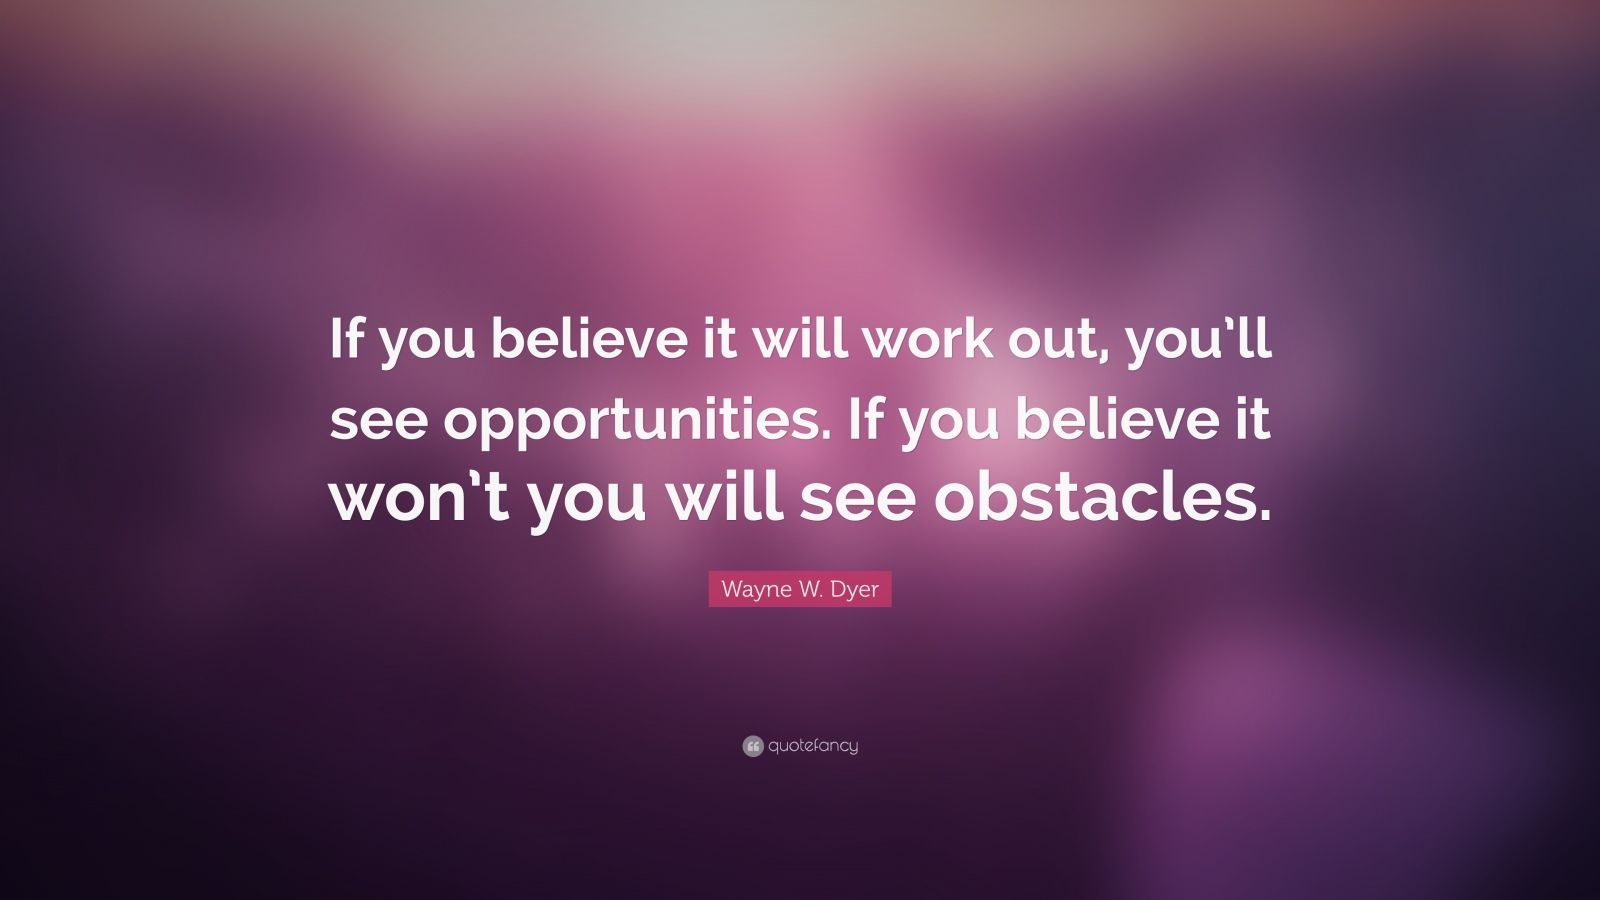 """Wayne W. Dyer Quote: """"If you believe it will work out, you'll see opportunities. If you believe it won't you will see obstacles."""""""